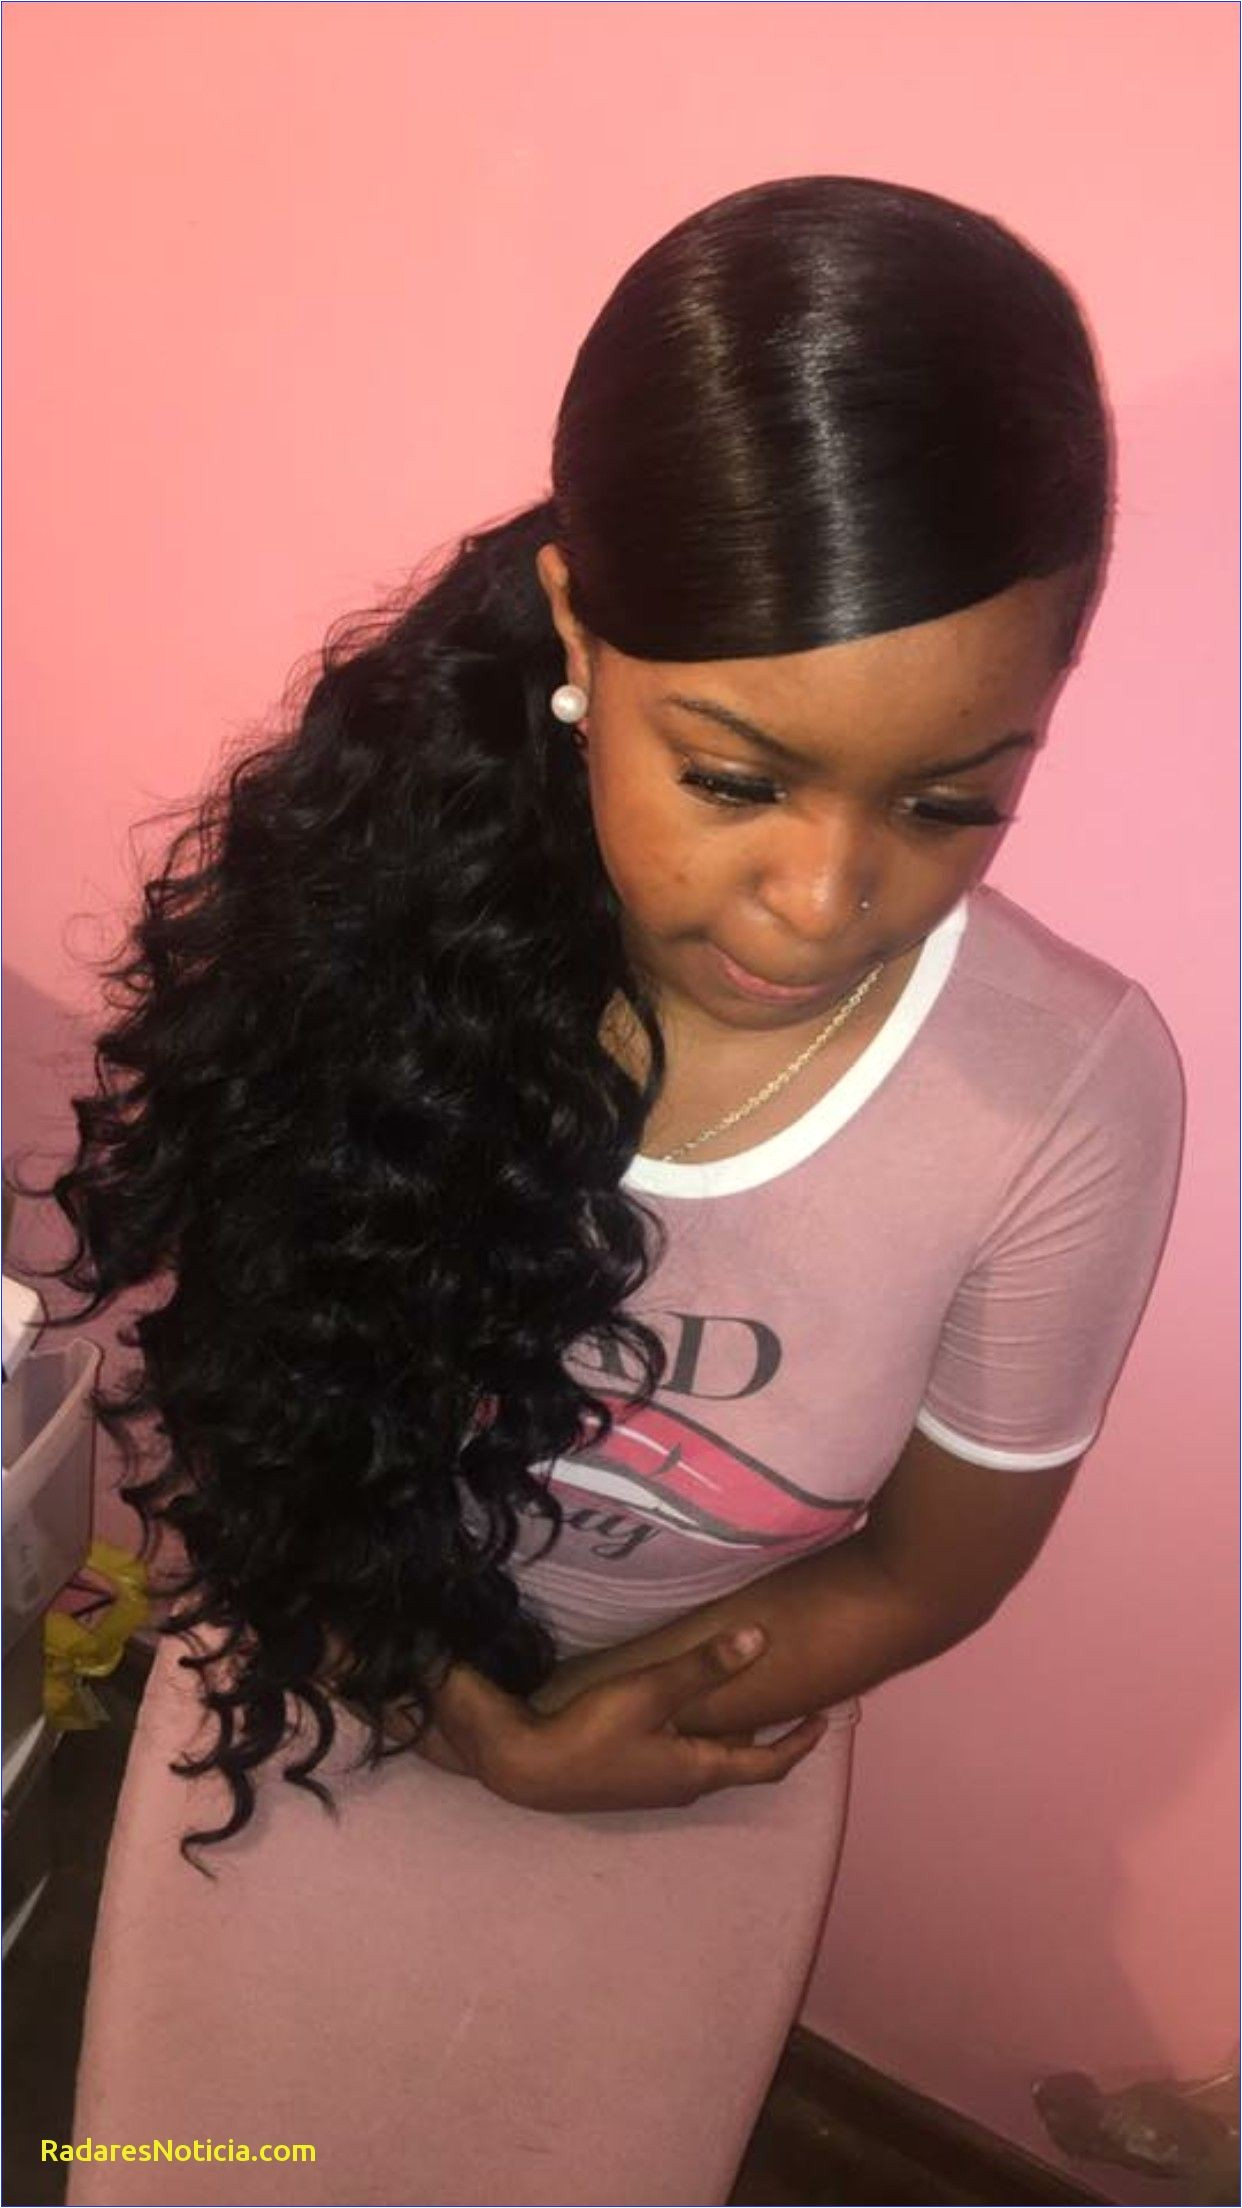 Lil Girl Twist Hairstyles Weave Braid Hairstyles for Kids Fresh Braided Hairstyles In A